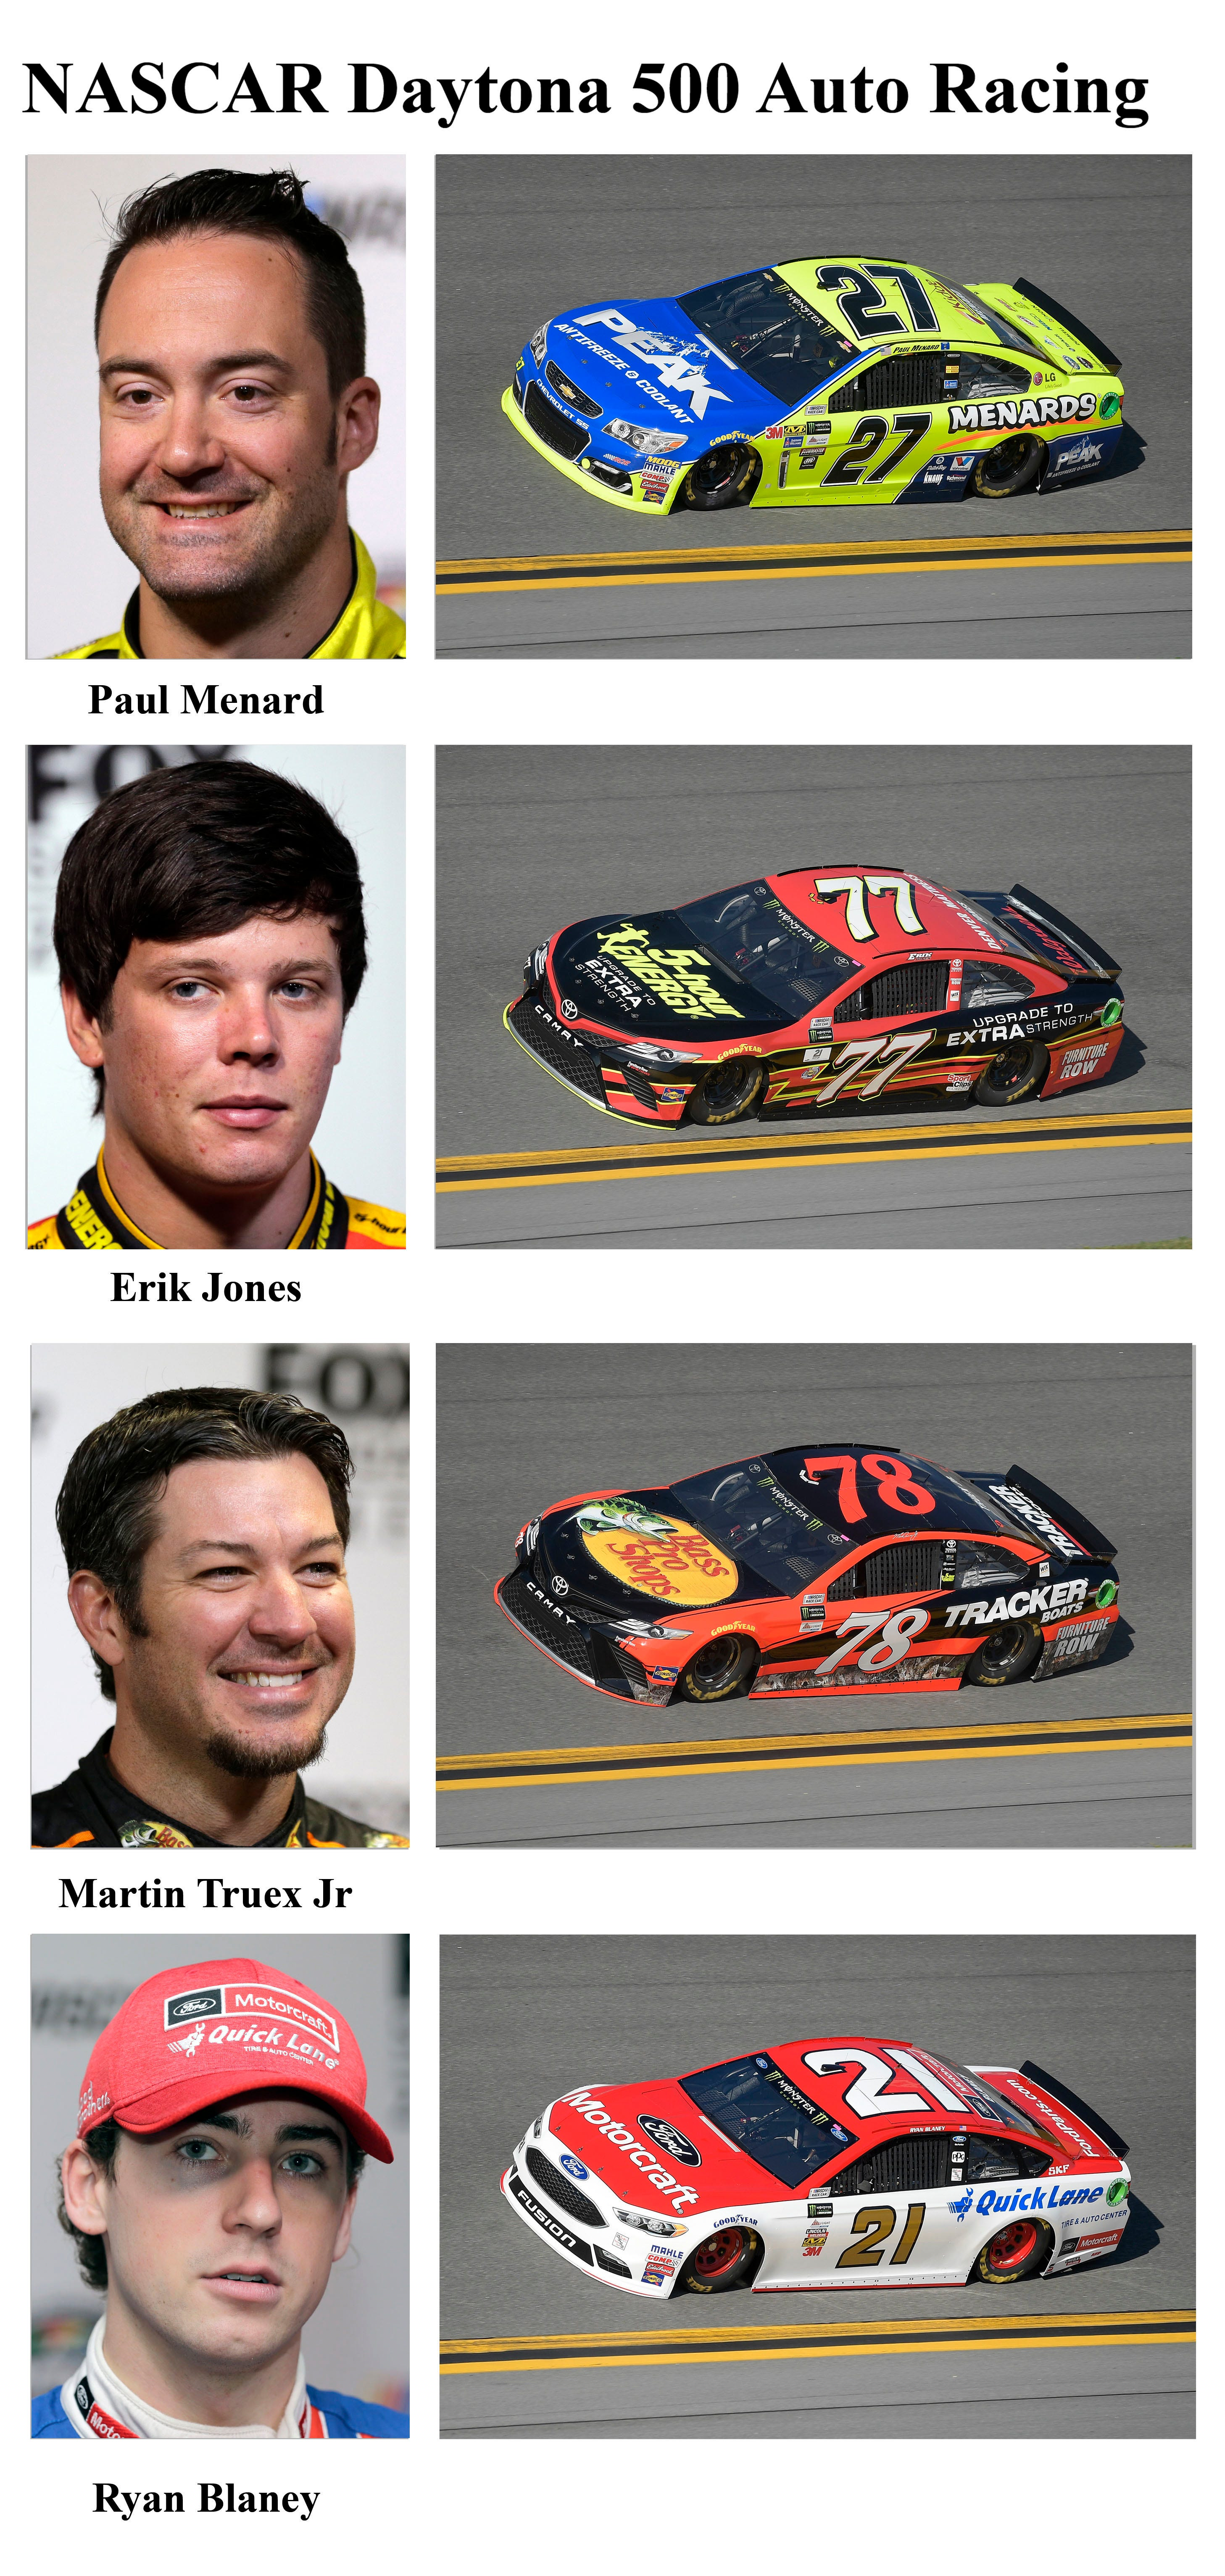 Drivers competing in the 2017 Daytona 500